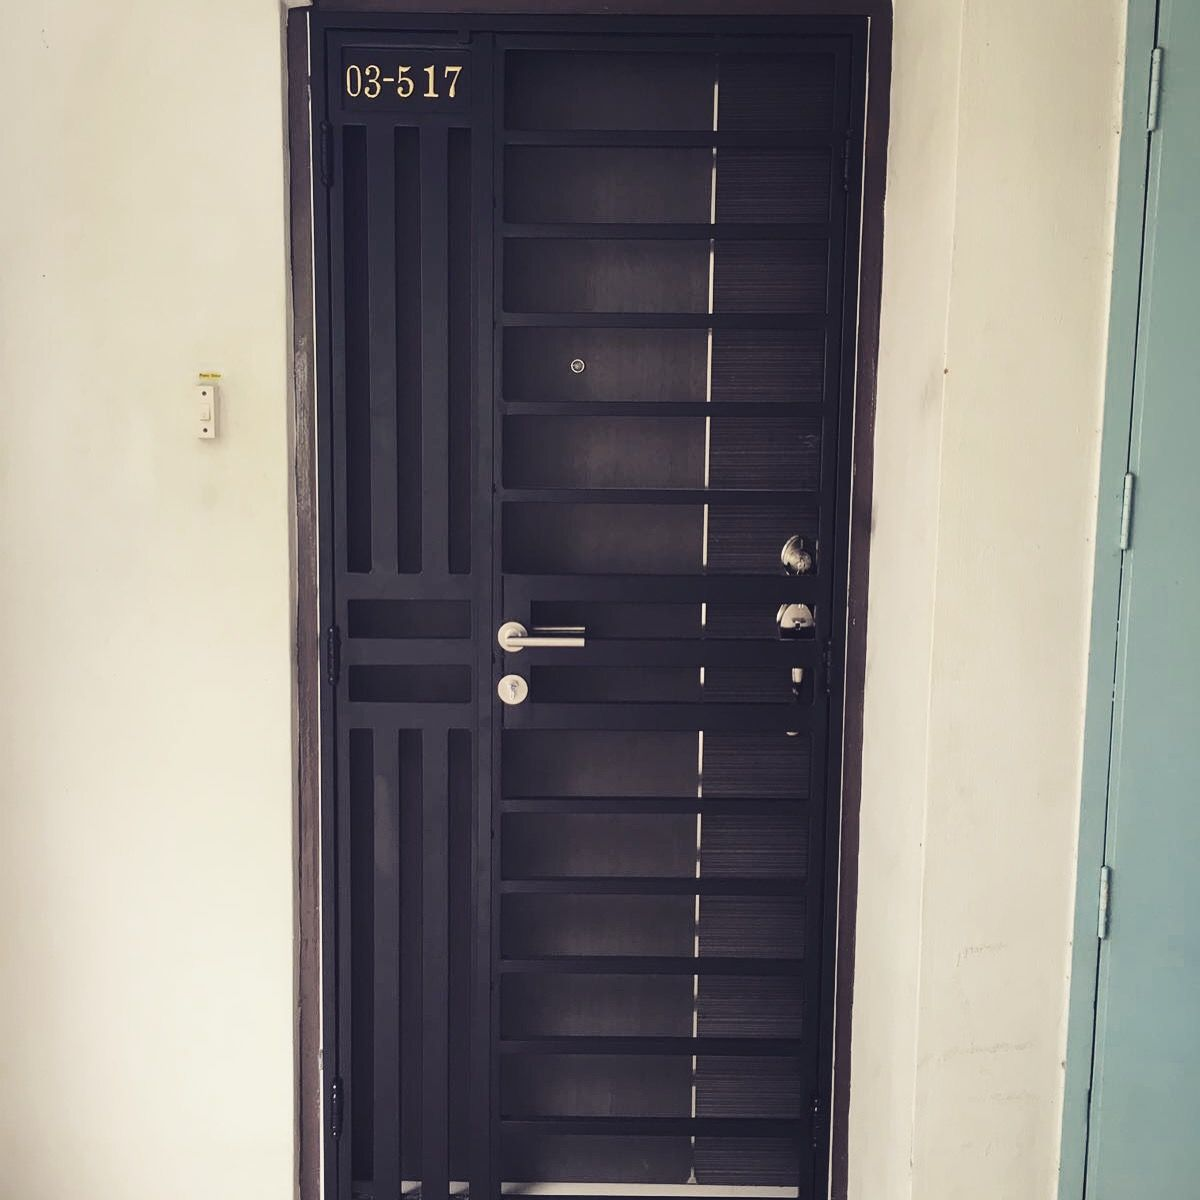 Latest Hdb Mild Steel Gate With Modern Design Yale Fingerprint Gate Lock At 1380 We Have Develope Metal Doors Design Grill Door Design Steel Door Design